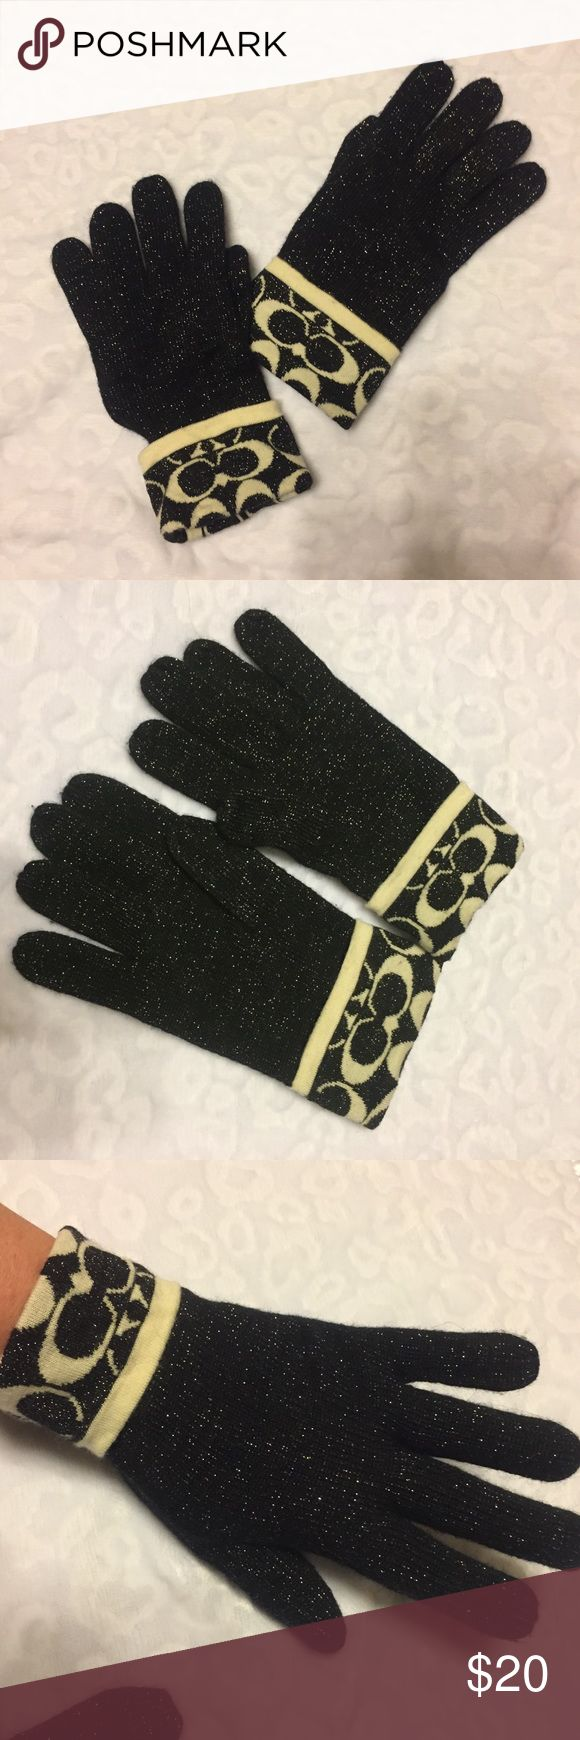 Coach Black & Cream Gloves Authentic Coach wool blend shimmer black gloves  with cream color signature logo on cuff. These are one size fits most. Beautiful gloves in good condition! Coach Accessories Gloves & Mittens